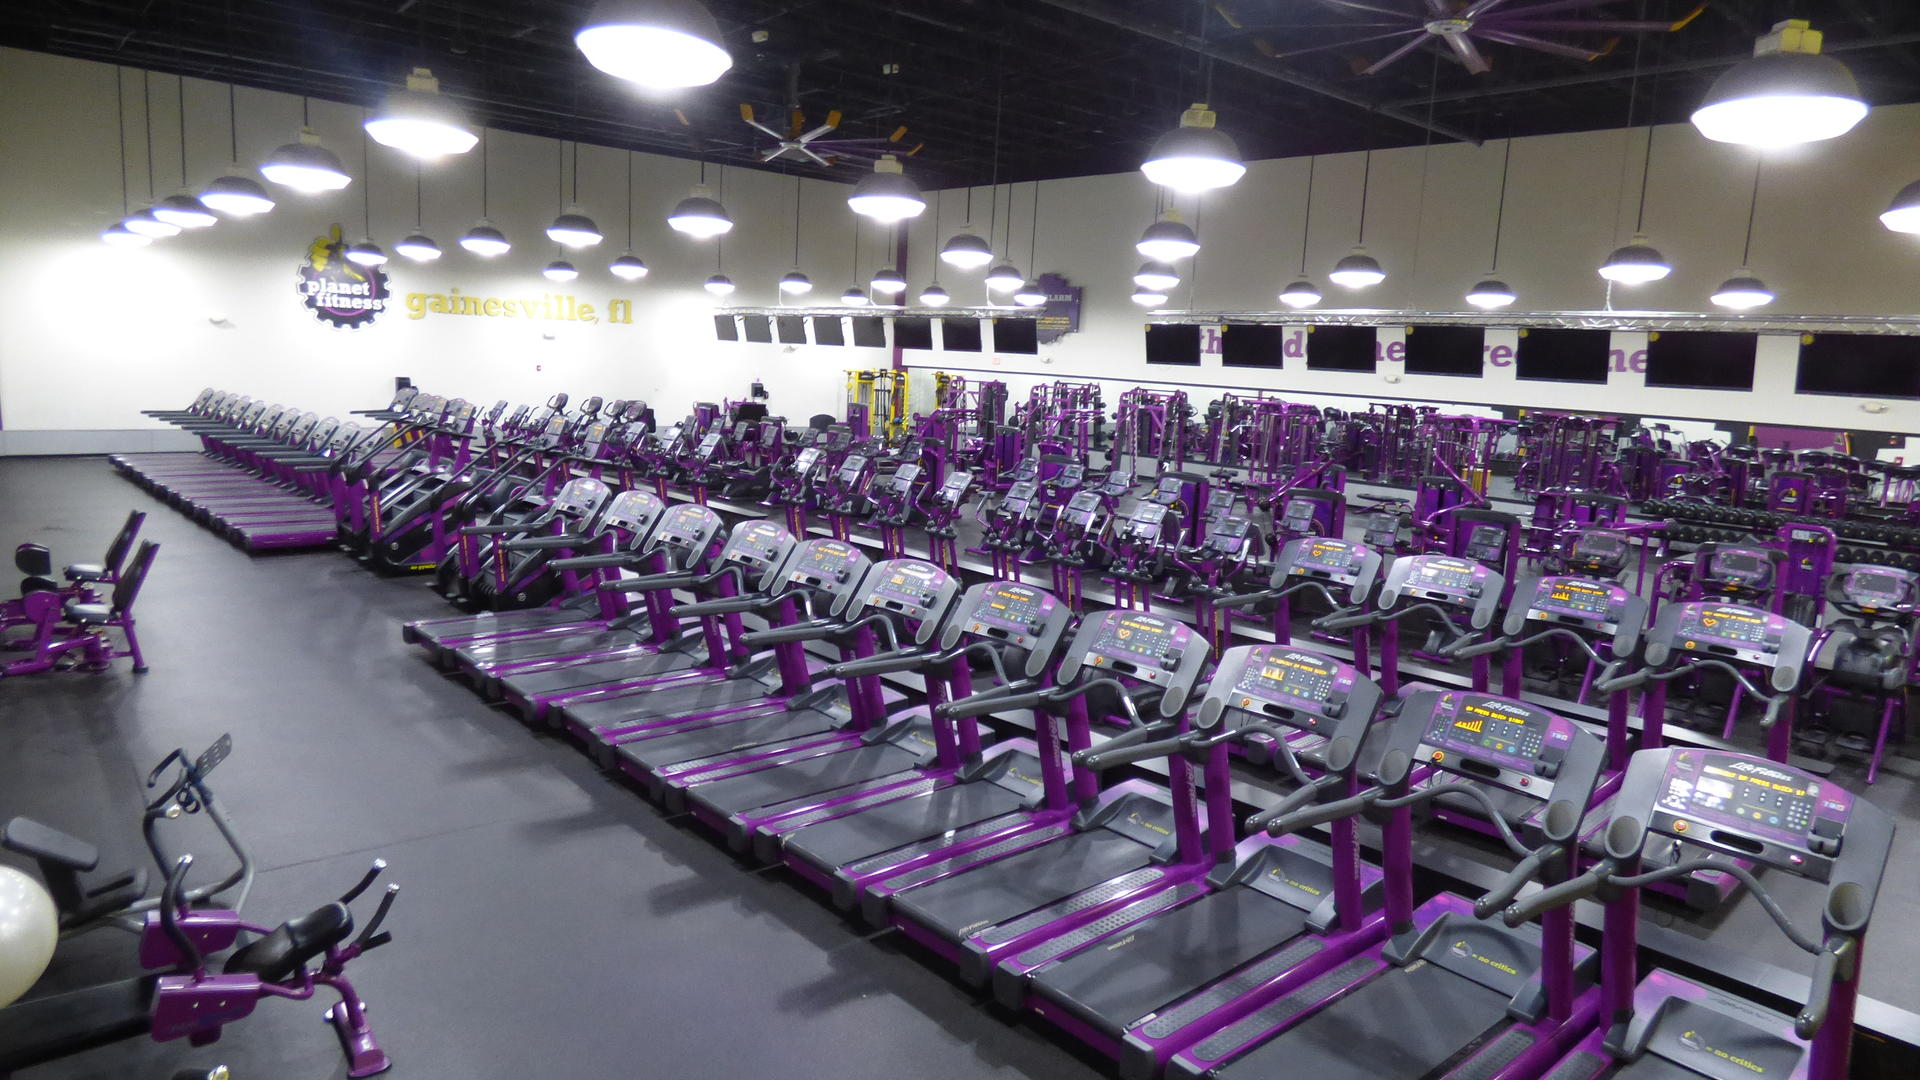 Gym in Gainesville 13th St FL  2210 NW 13th St